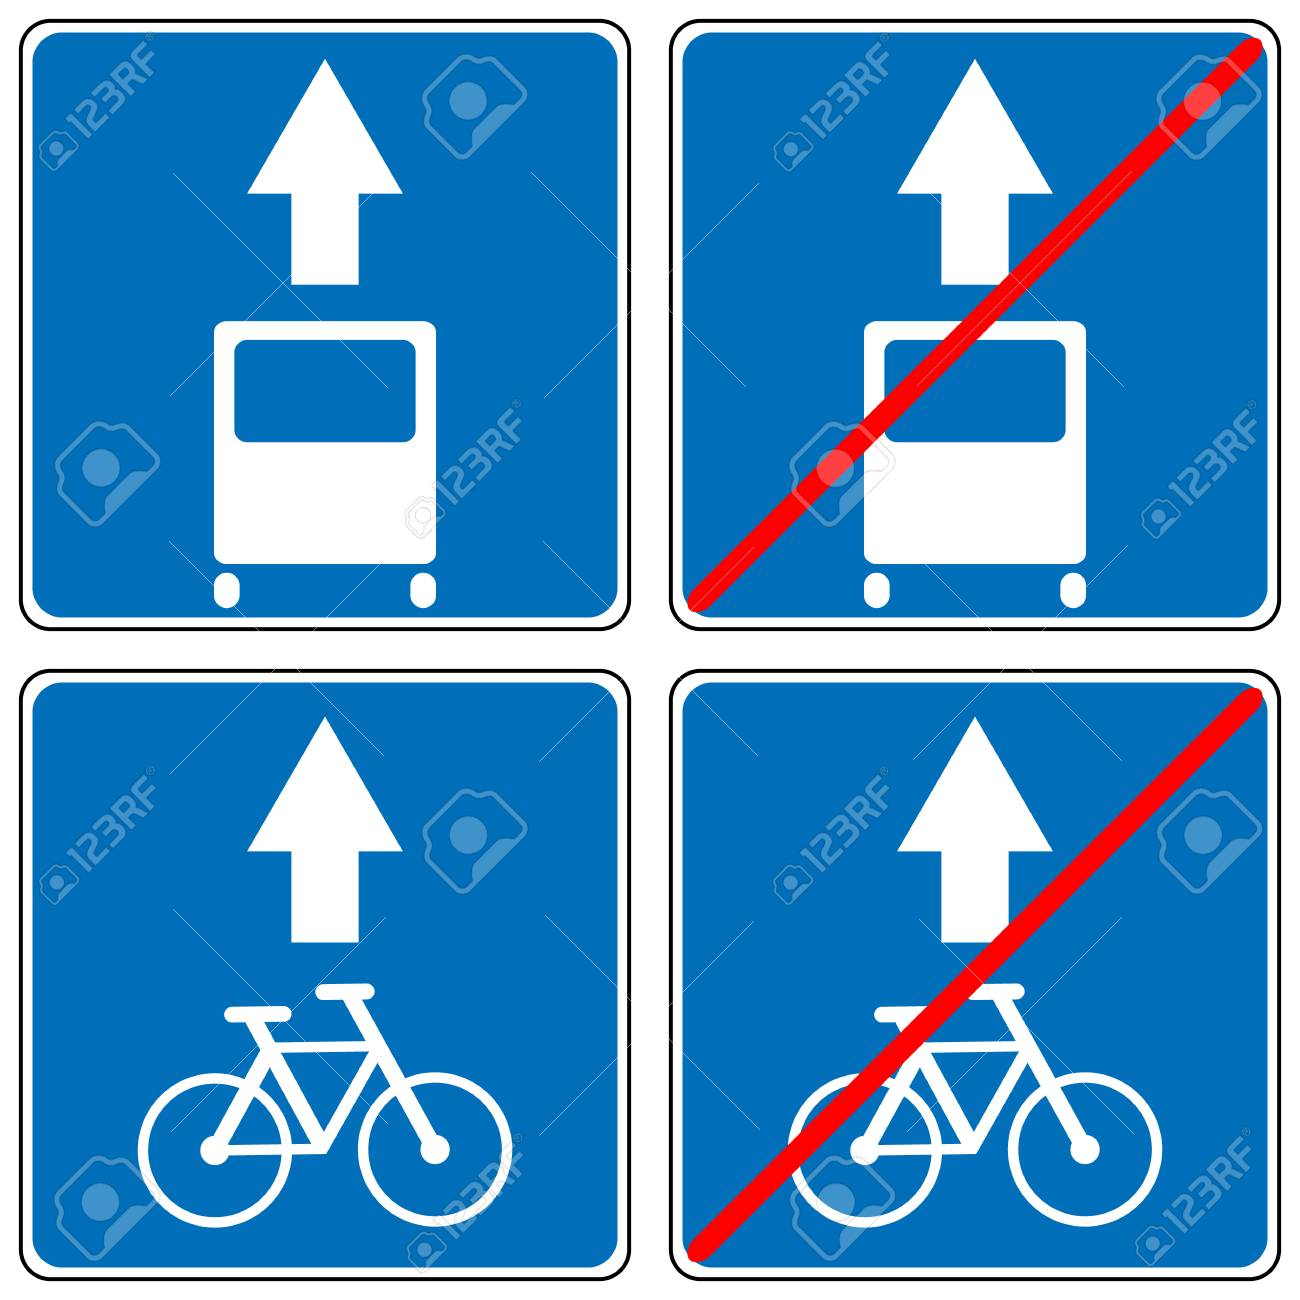 Ahead Only For Bus And Bycicles One Way Traffic Sign Drive